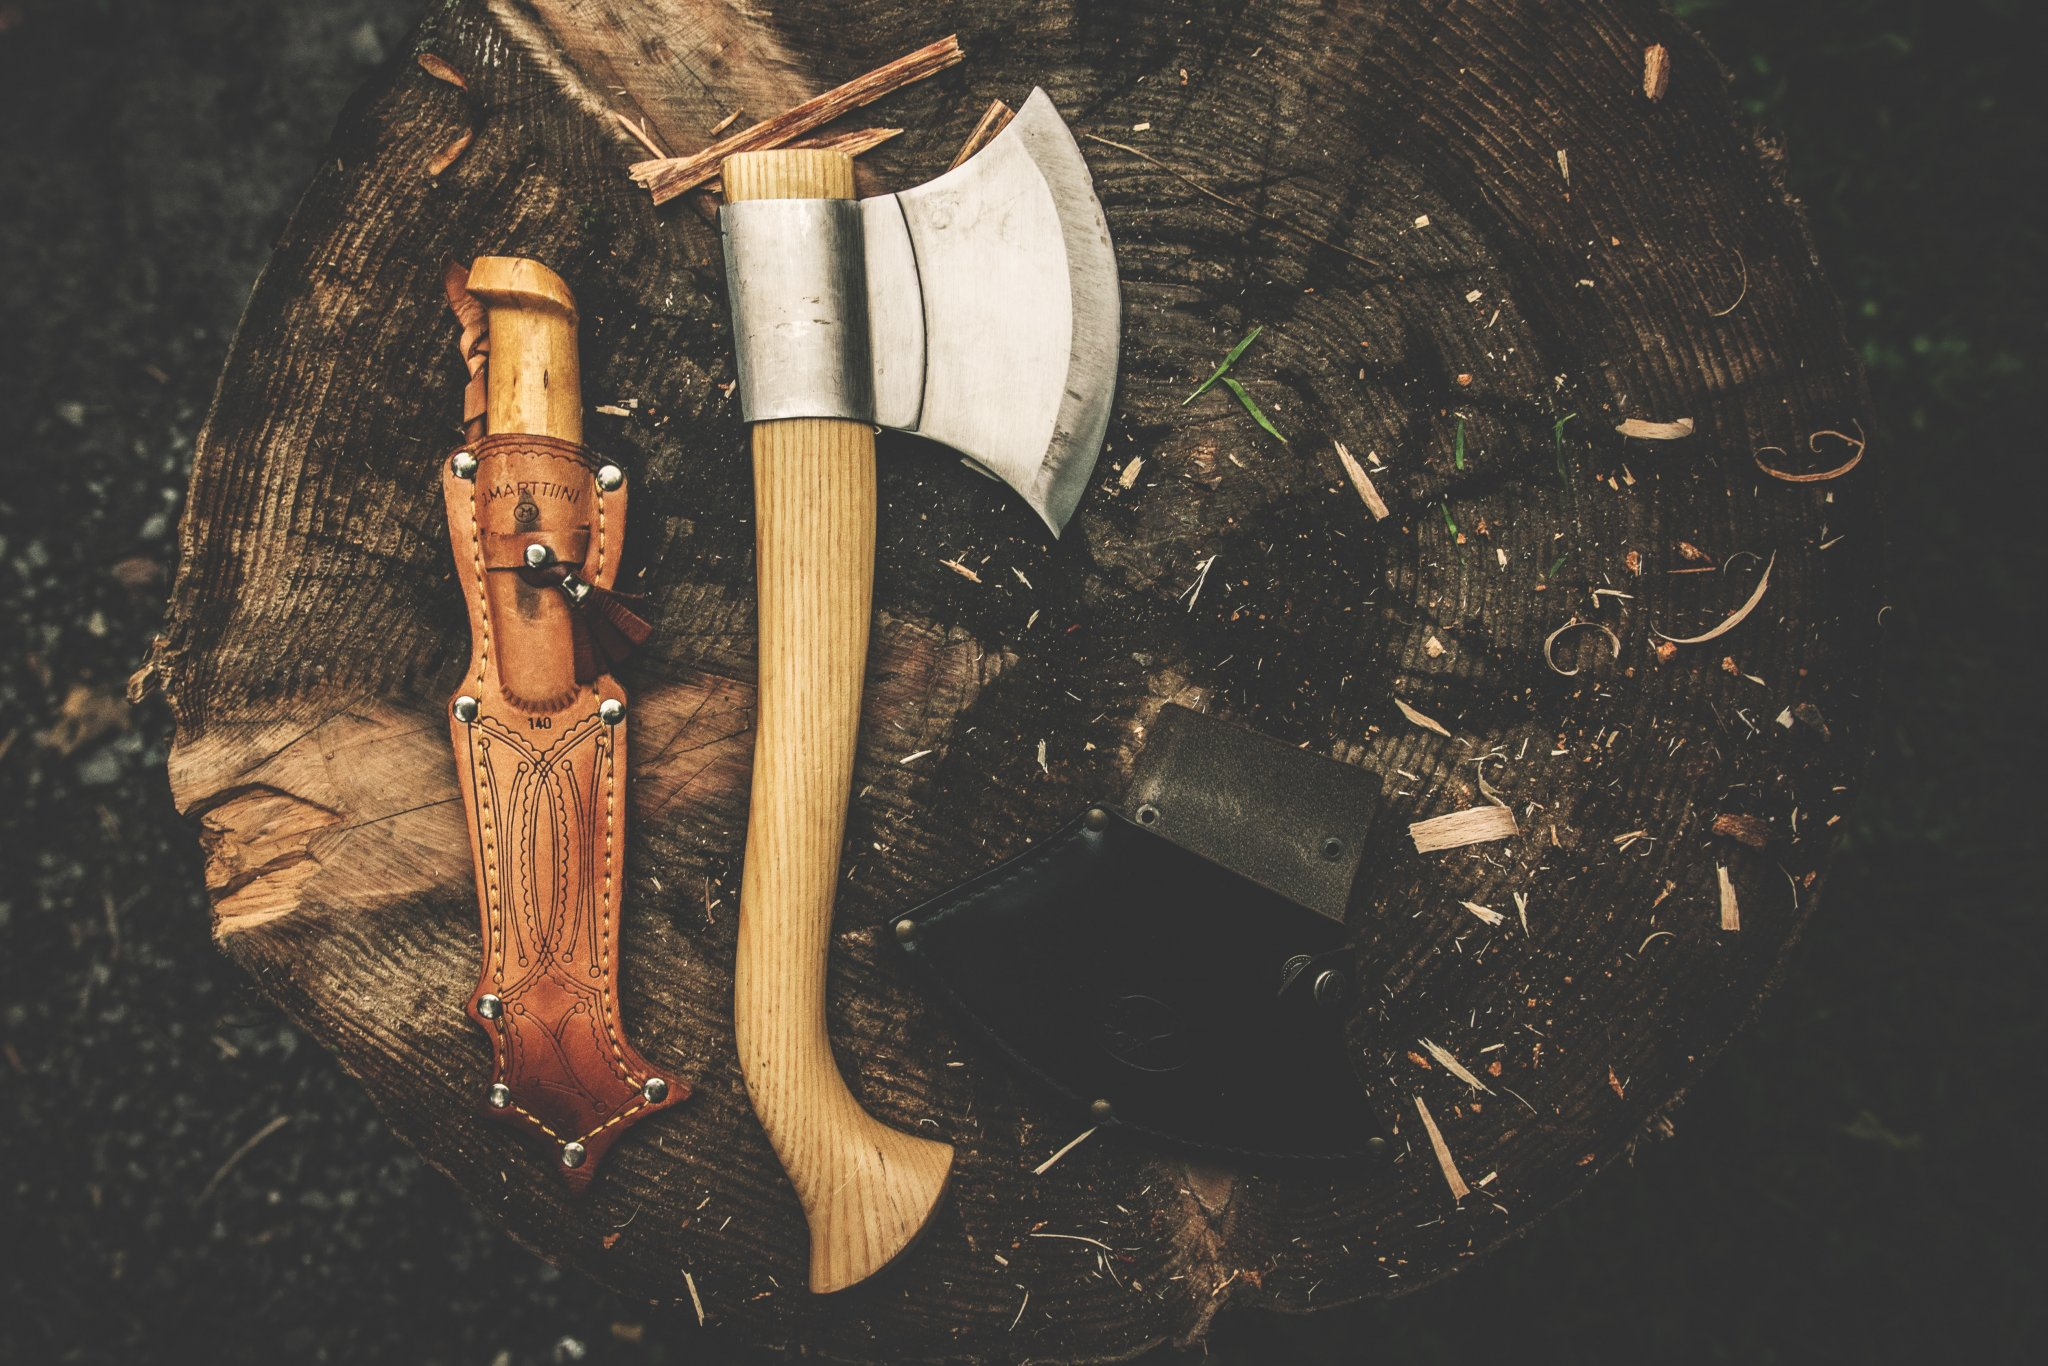 Image of an ax and knife. Essential tools for bushcraft